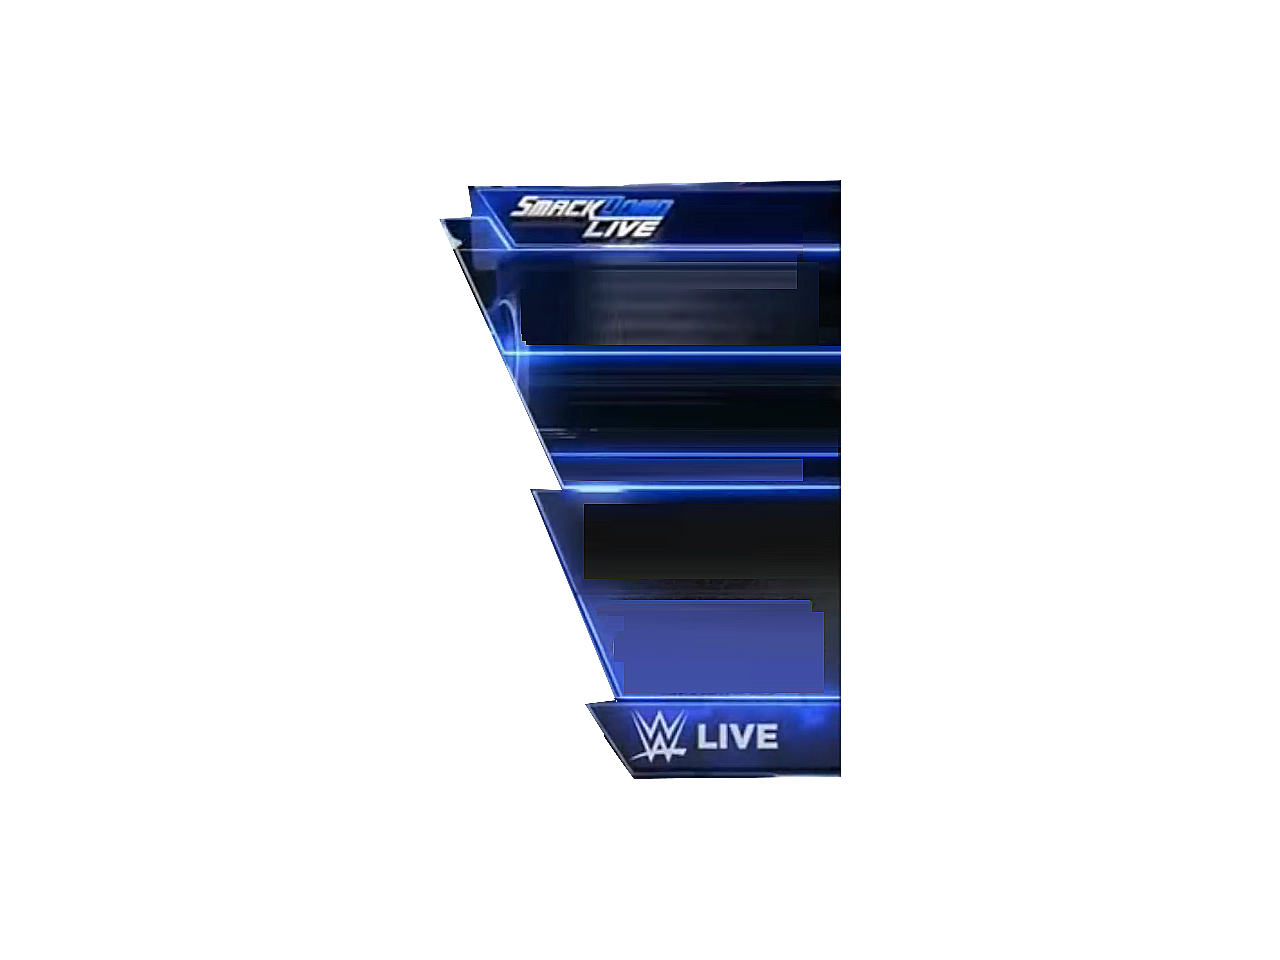 Renders Backgrounds LogoS: Smackdown Live Nameplate.